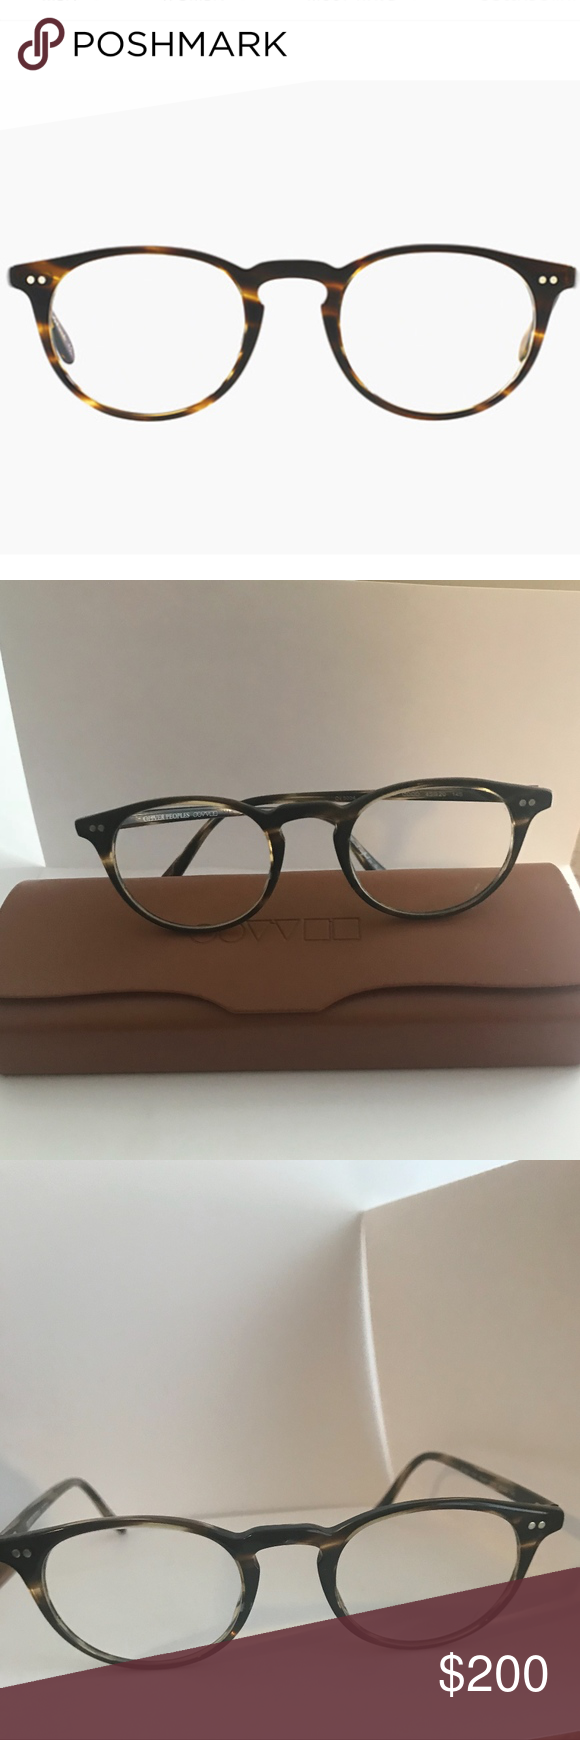 aeab4c31fa2 Oliver Peoples Riley R Glasses OLIVER PEOPLES RILEY-R OV5004 1003 Cocobolo-  handcrafted lightweight plastic and includes rounded contouring